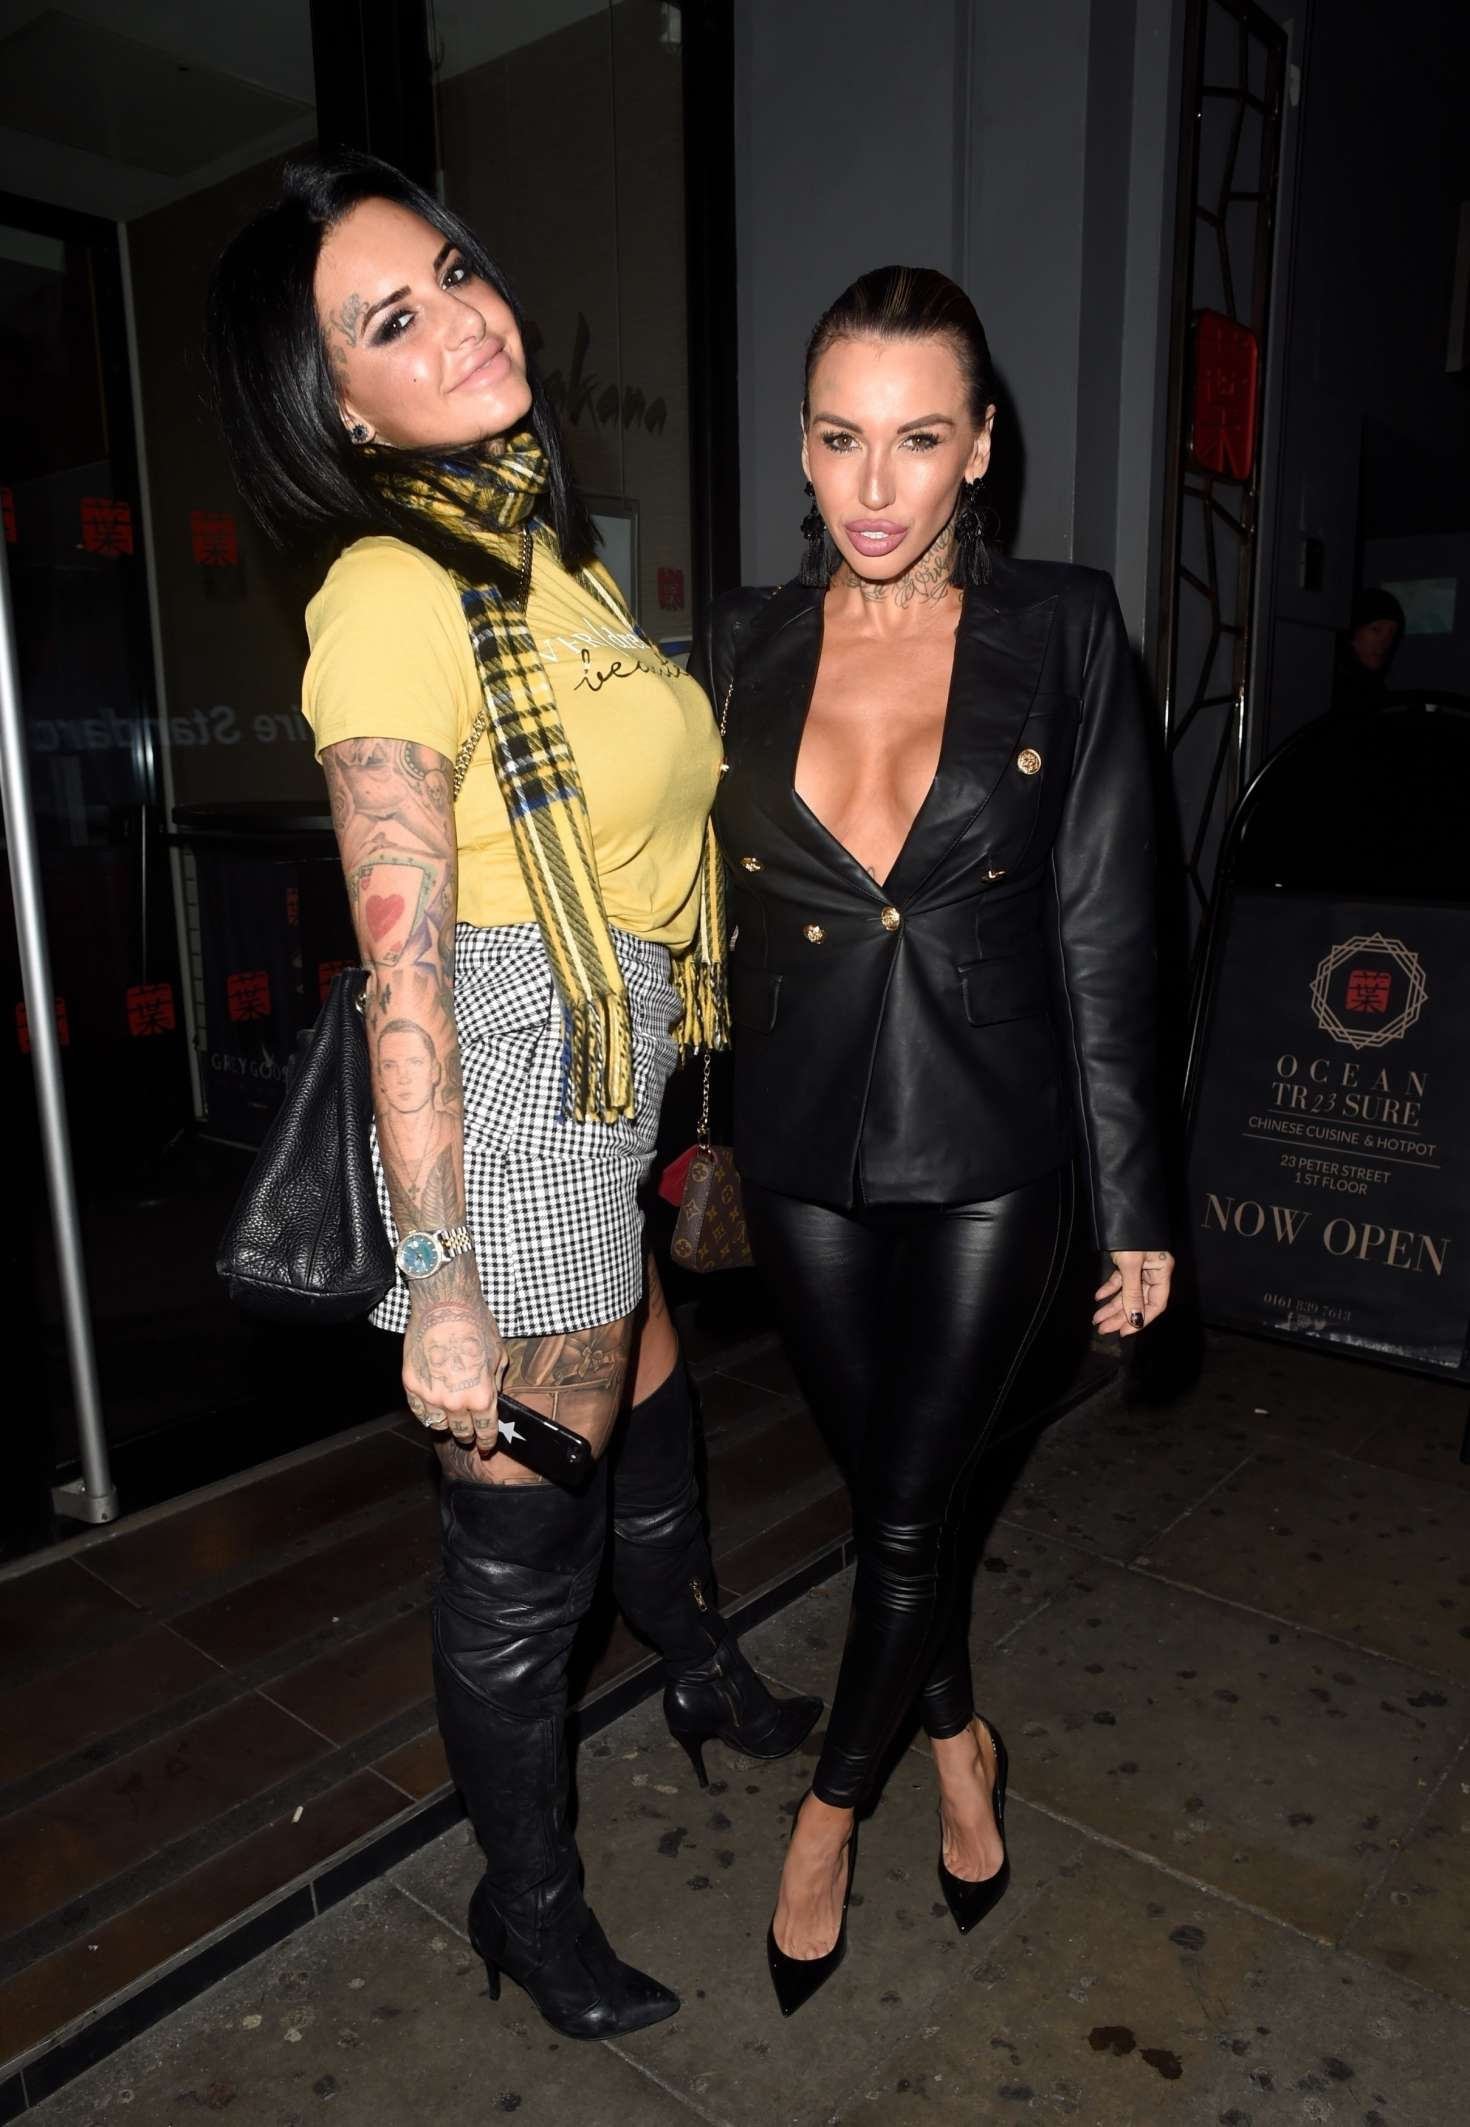 Jemma Lucy and Sallie Axl – Night out at the Sakana Restaurant in Manchester